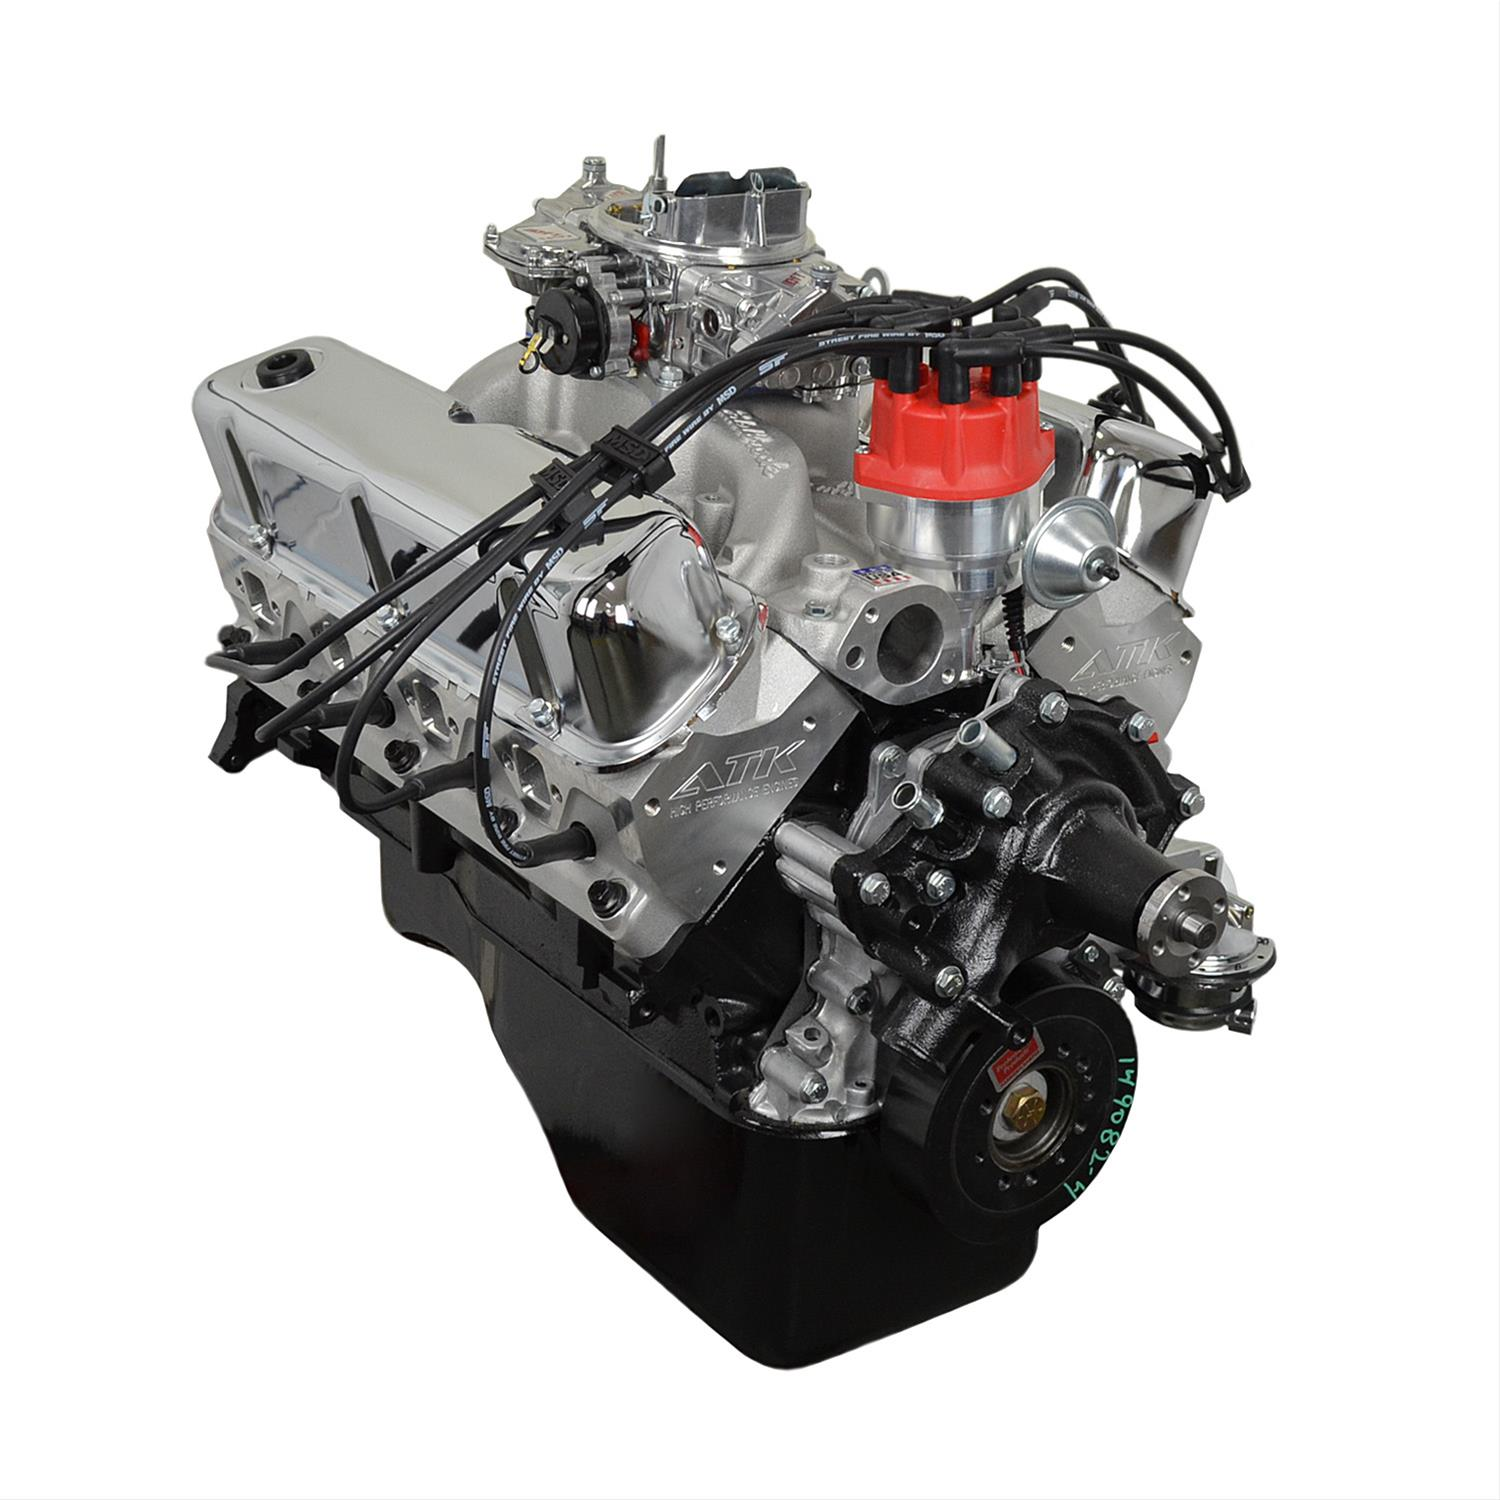 Details about ATK High Performance Ford 347 Stroker 410HP Stage 3 Crate  Engine HP80C